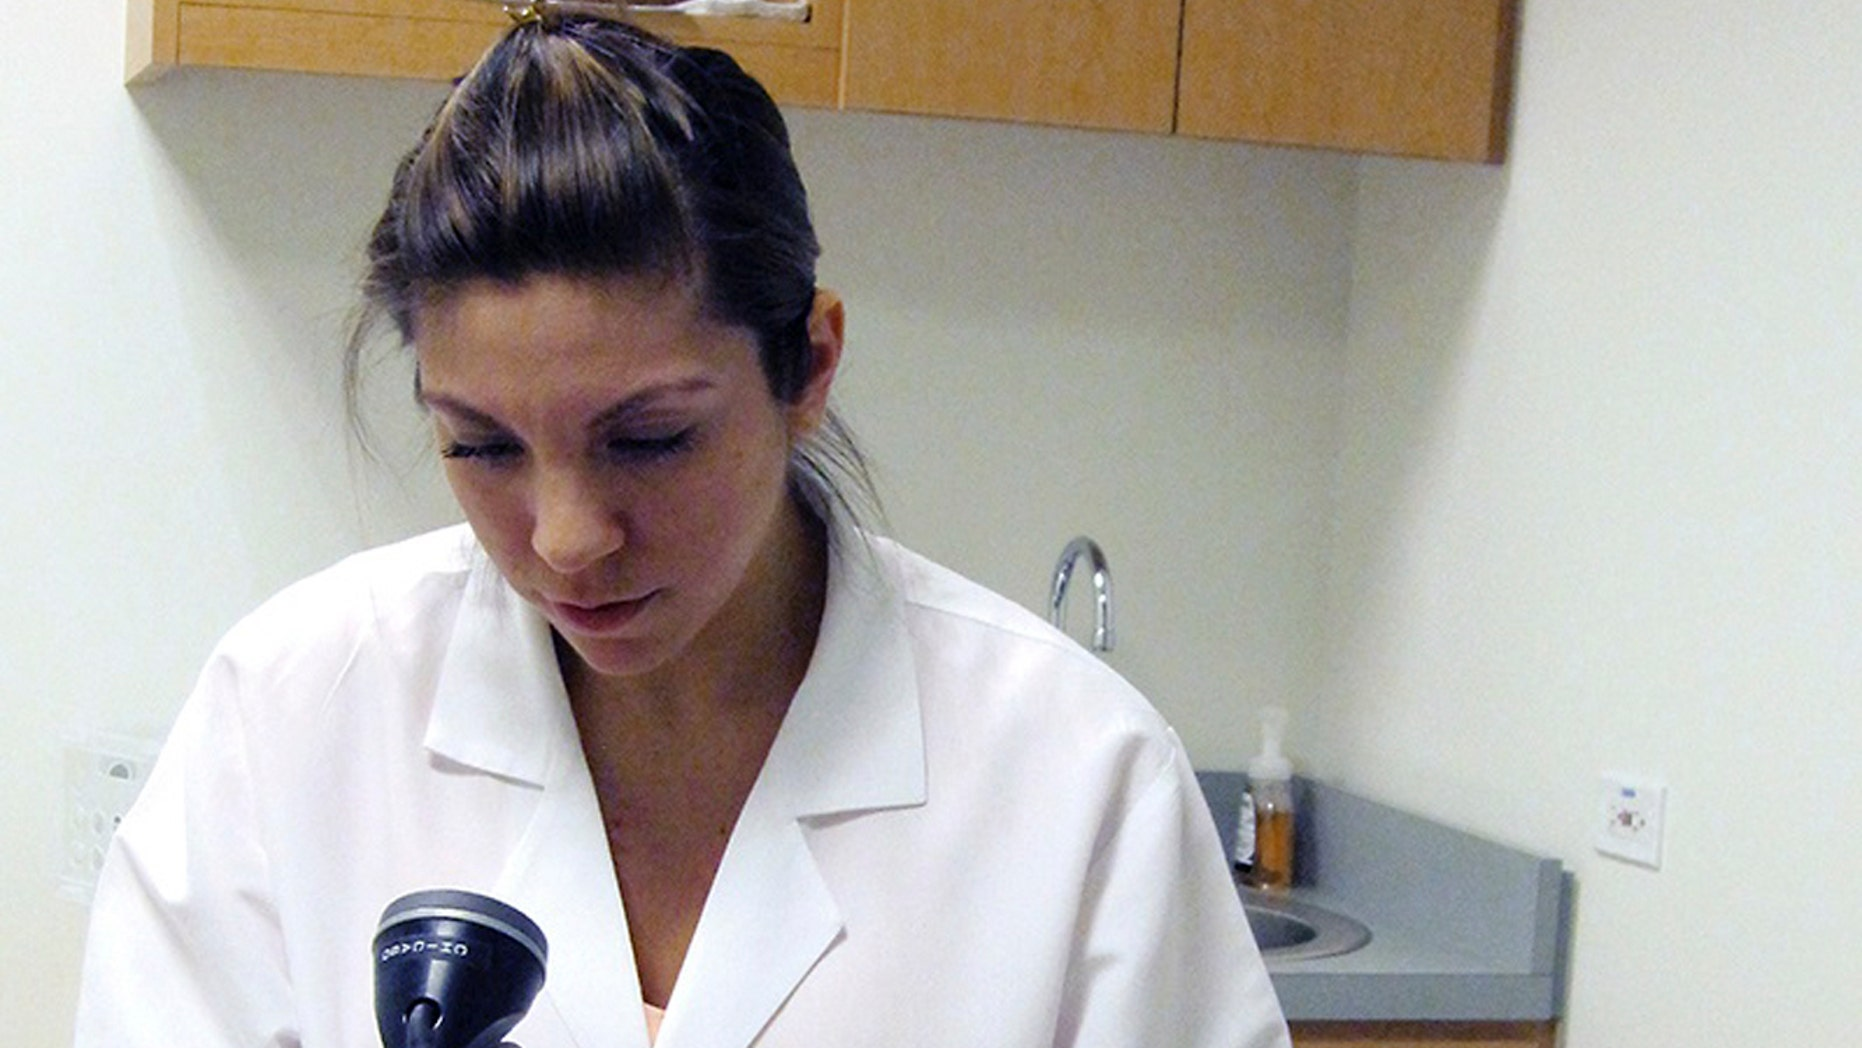 This 2010 photo from the National Heart, Lung and Blood Institute provided by the University of Illinois at Chicago shows a study participant undergoing a medical exam at the Chicago site of landmark research on the health of Hispanics in the United States. The ongoing National Heart, Lung and Blood Institute study involves more than 16,000 subjects in the Bronx, Chicago, Miami and San Diego. Results released Monday, Feb. 24, 2014, show health differences by country of origin.(AP Photo/Courtesy of the National Heart, Lung and Blood Institute via the University of Illinois at Chicago, Dr. Larissa Aviles-Santa)